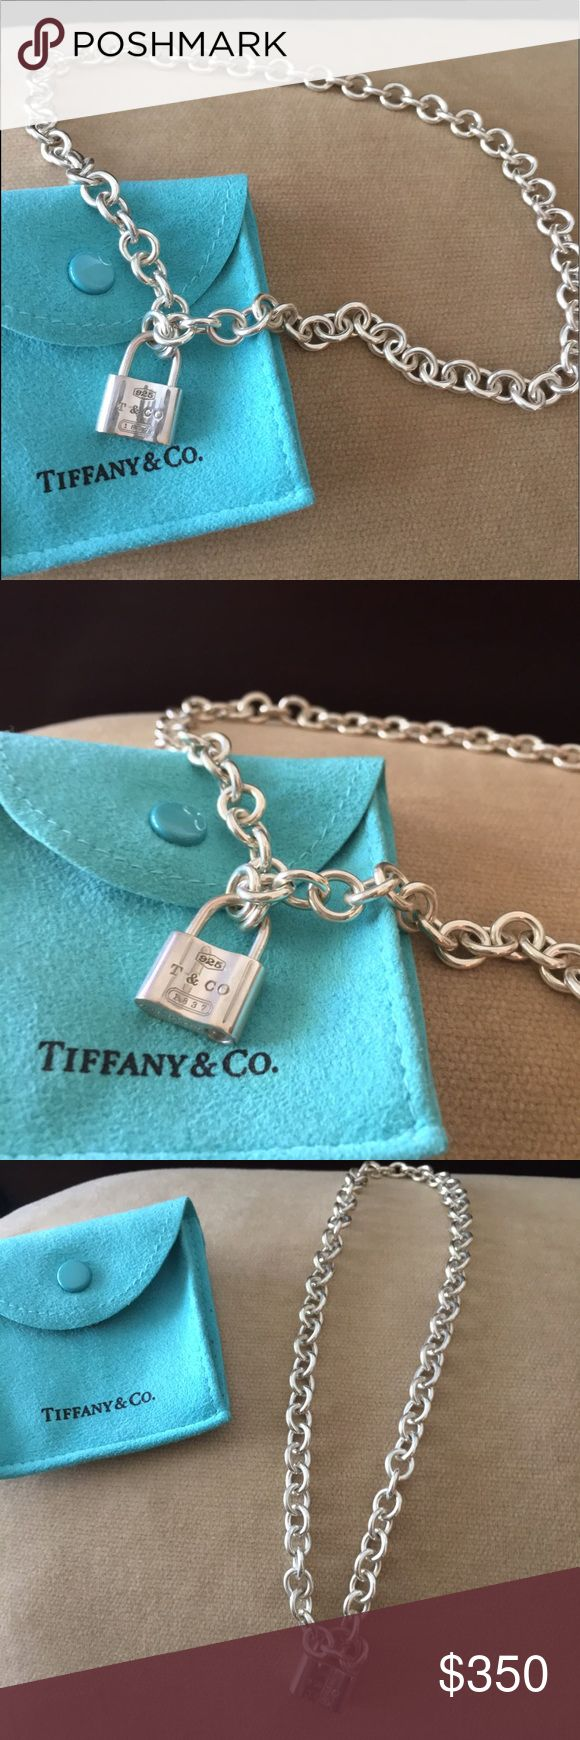 """NWOT Tiffany & Co. Sterling Padlock Necklace! Gorgeous sterling silver 1837 padlock necklace by Tiffany & Co. Never worn, comes with Tiffany pouch and protective pouch for padlock. 16"""" in length. Perfect for a gift or to add to your own collection! This unique design has a working padlock that acts as the clasp for the necklace. Tiffany & Co. Jewelry Necklaces"""